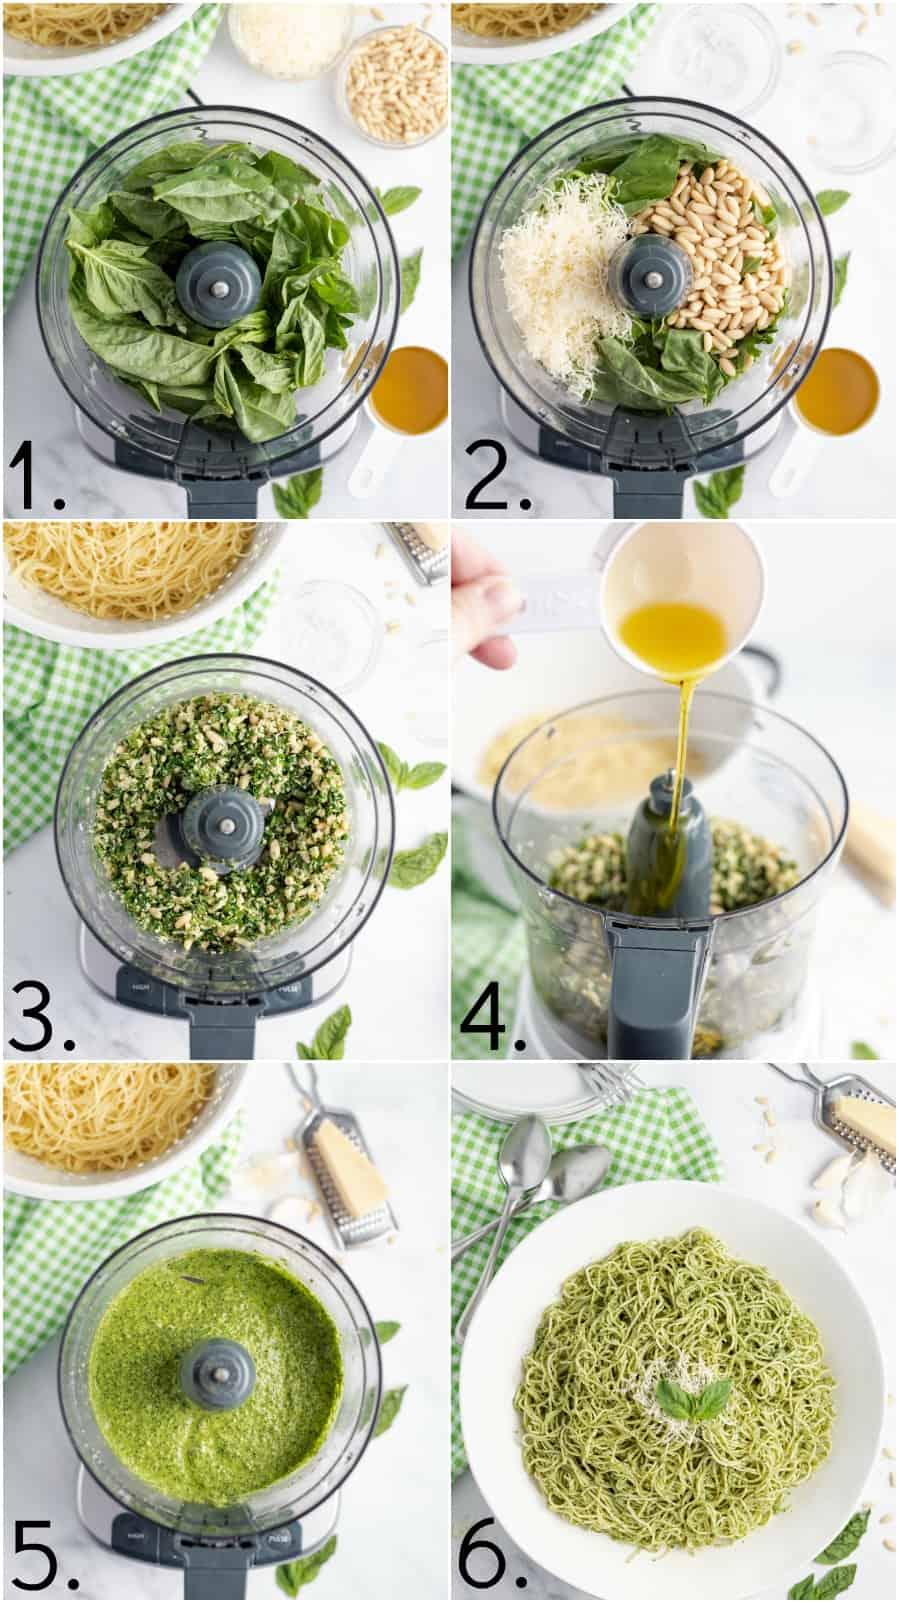 Step by step photo collage on how to make basil pesto.